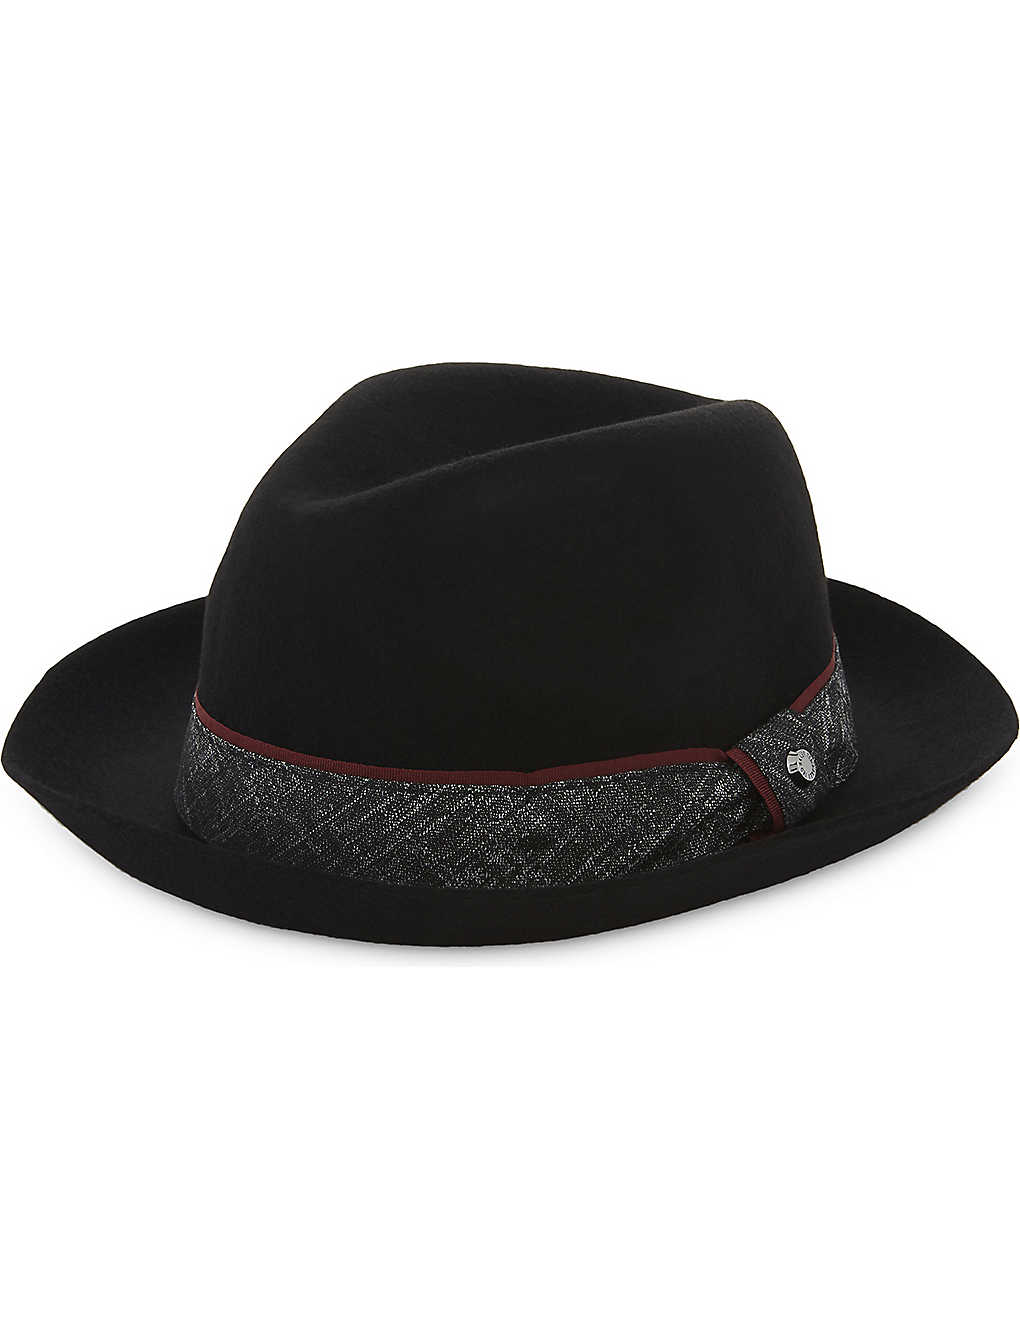 dc8fe0c2dc8 TED BAKER - Wool fedora hat